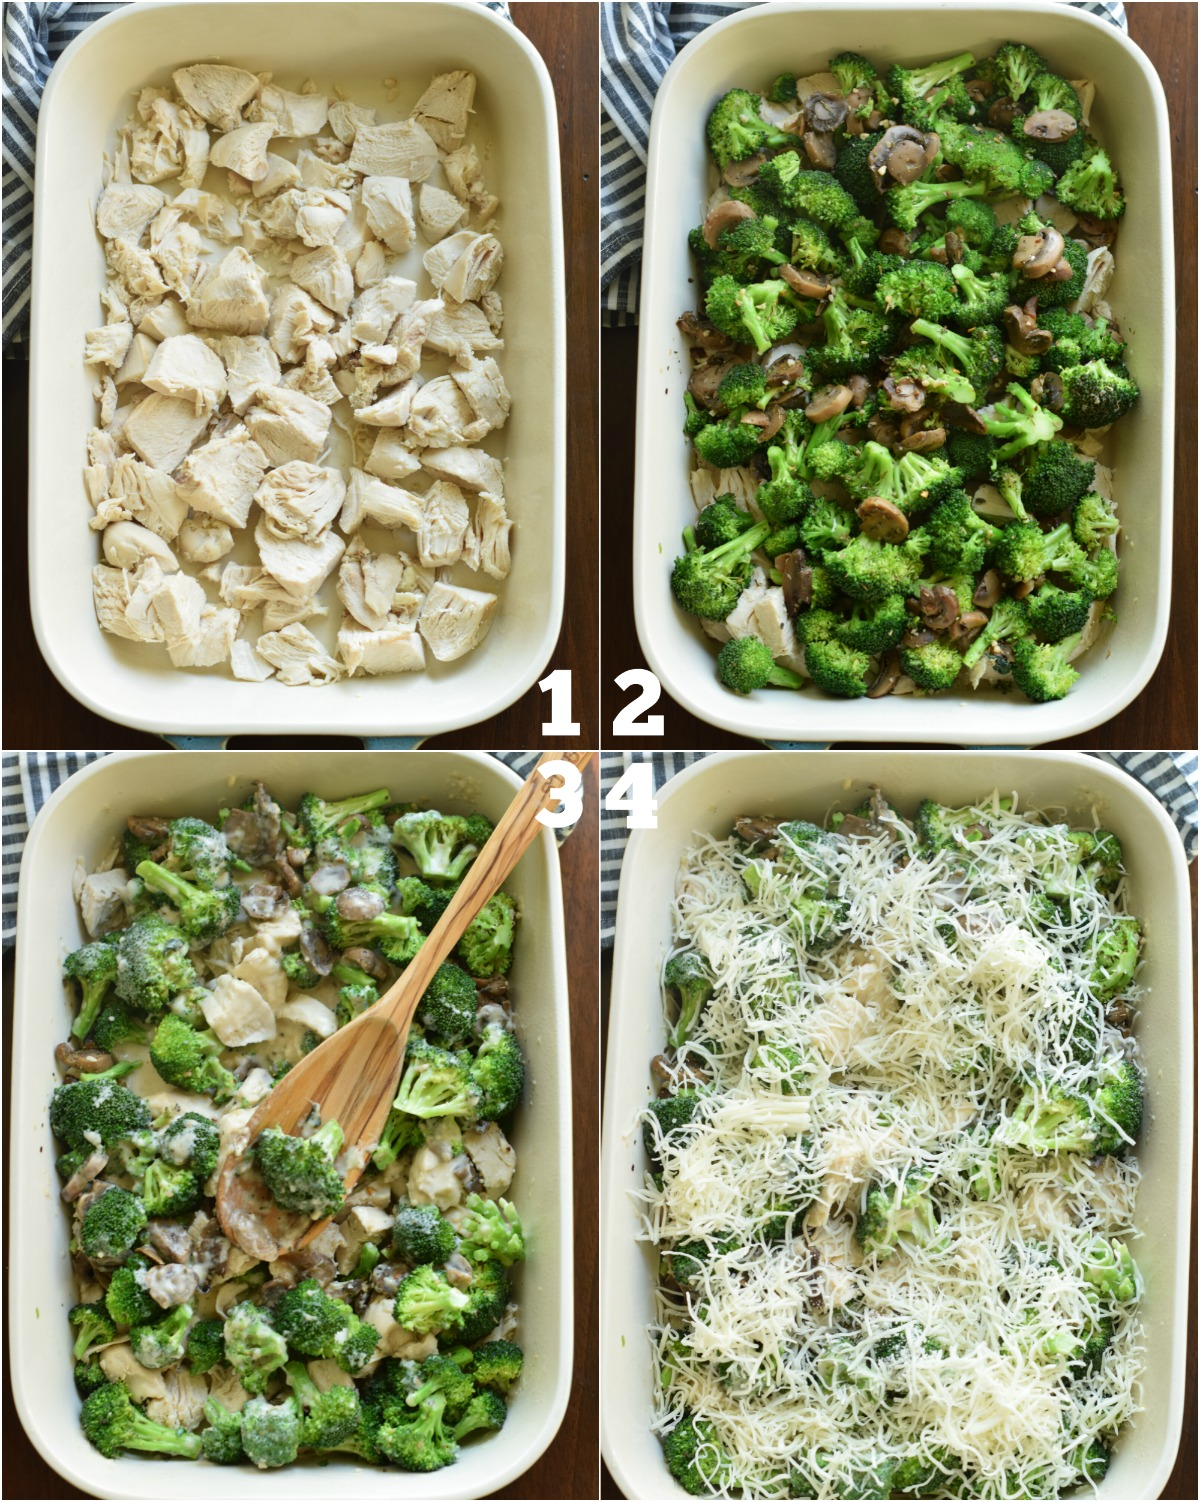 Step by step photos showing how to make chicken broccoli casserole.